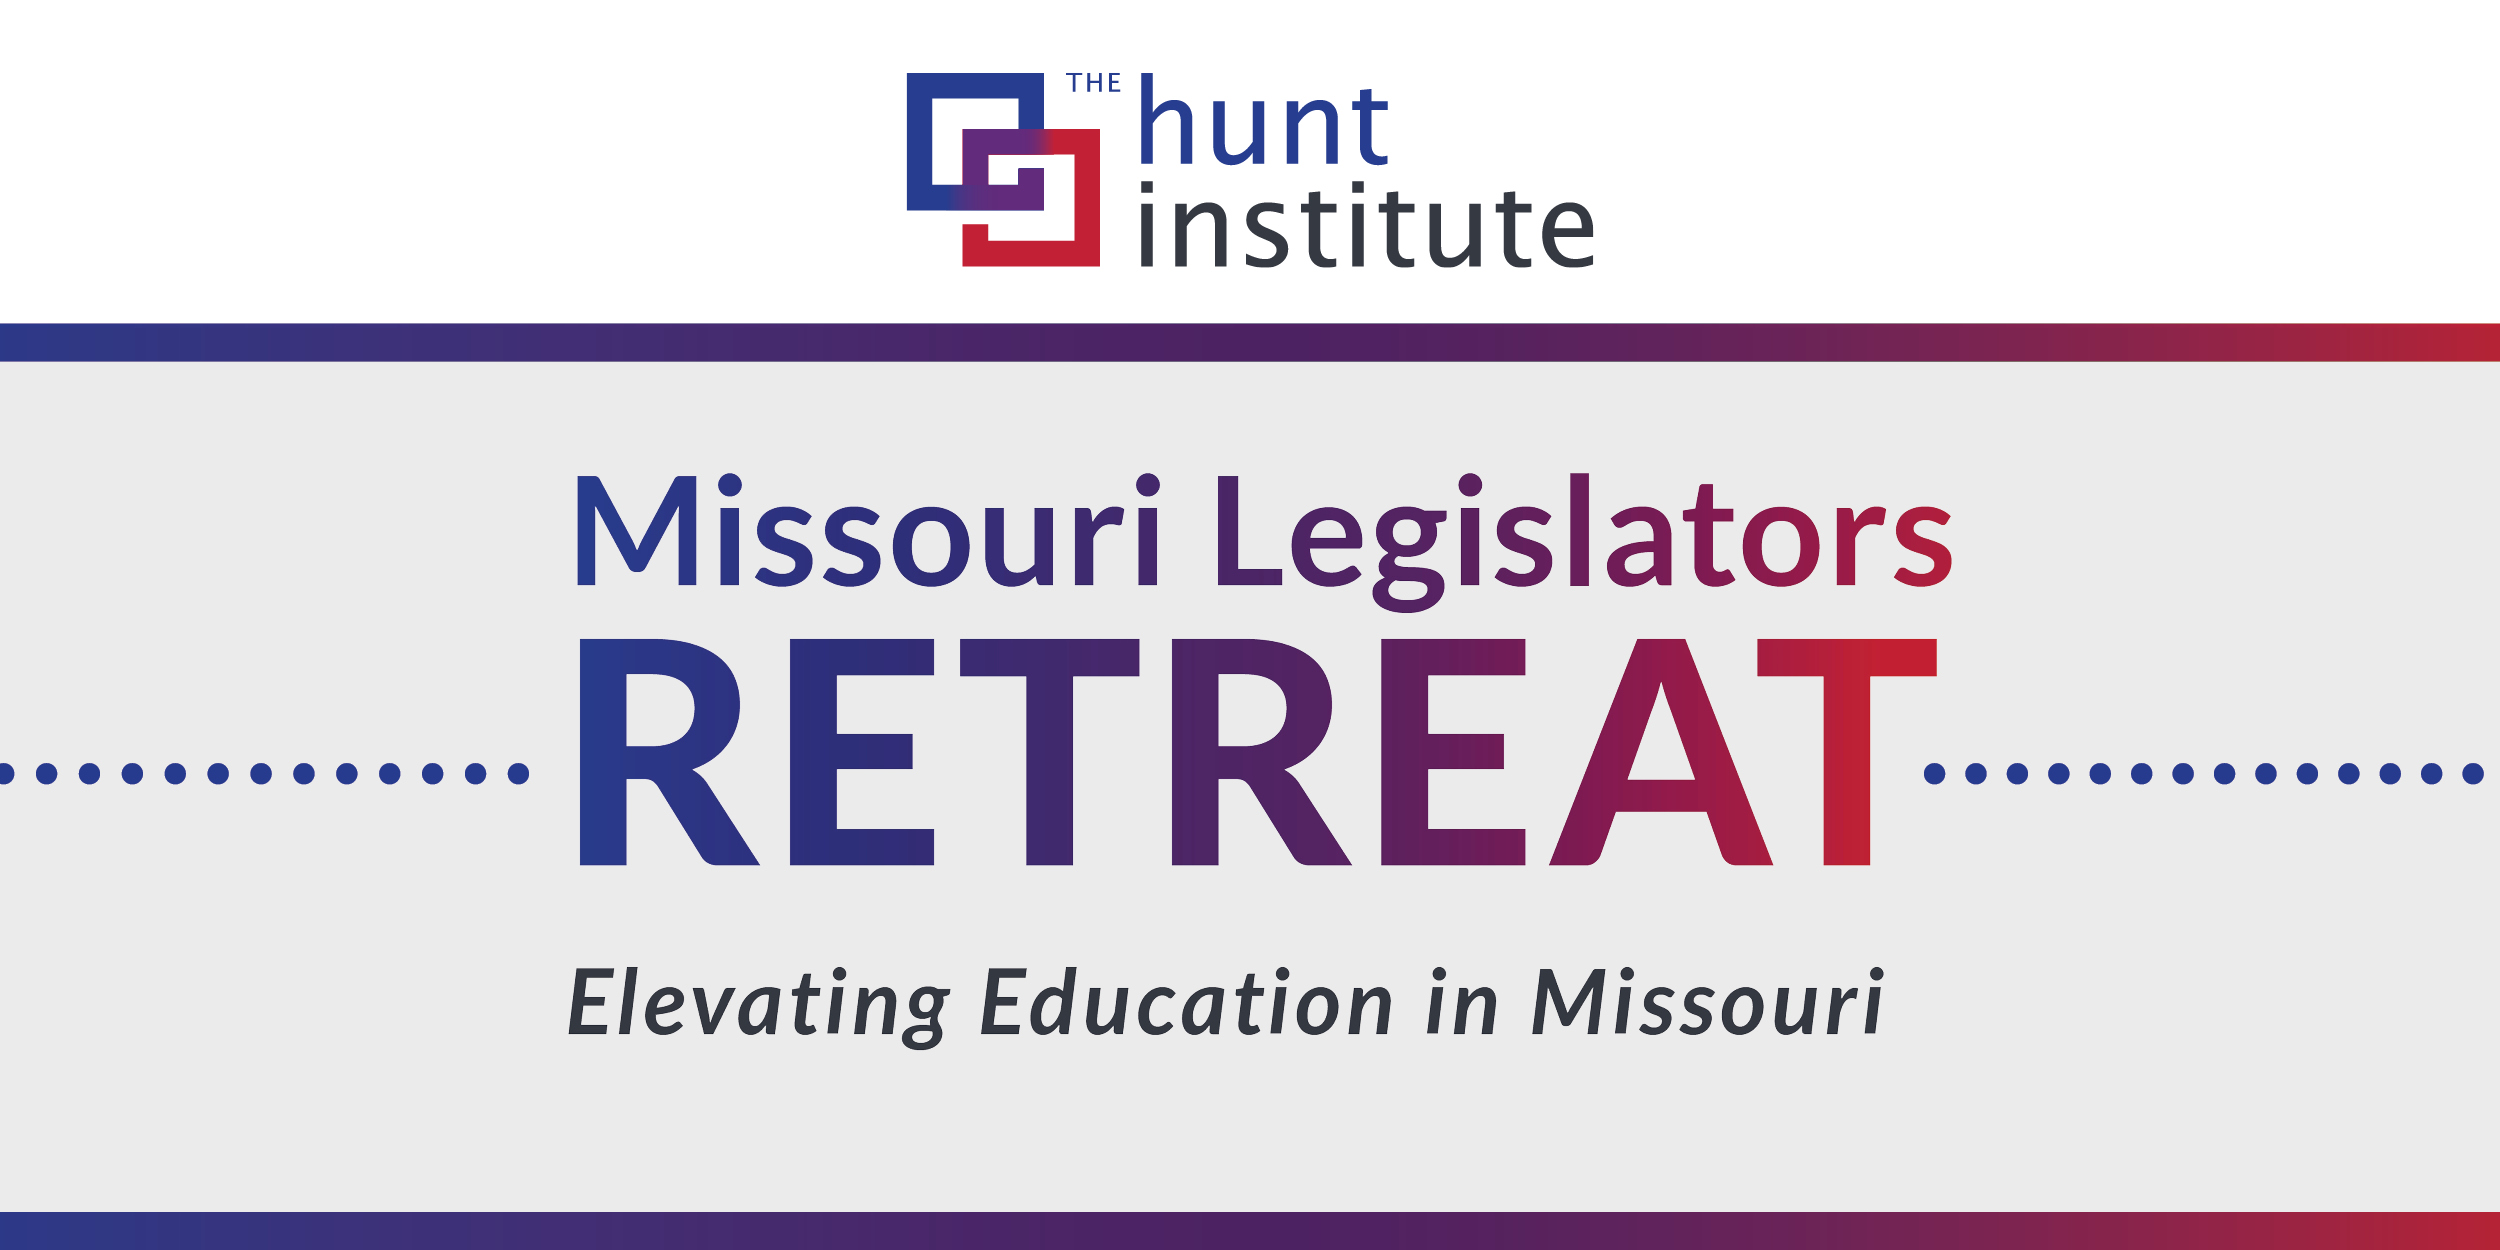 Missouri Legislators Convene with State and National Education Experts to Discuss Timely Education Policies - The Hunt Institute